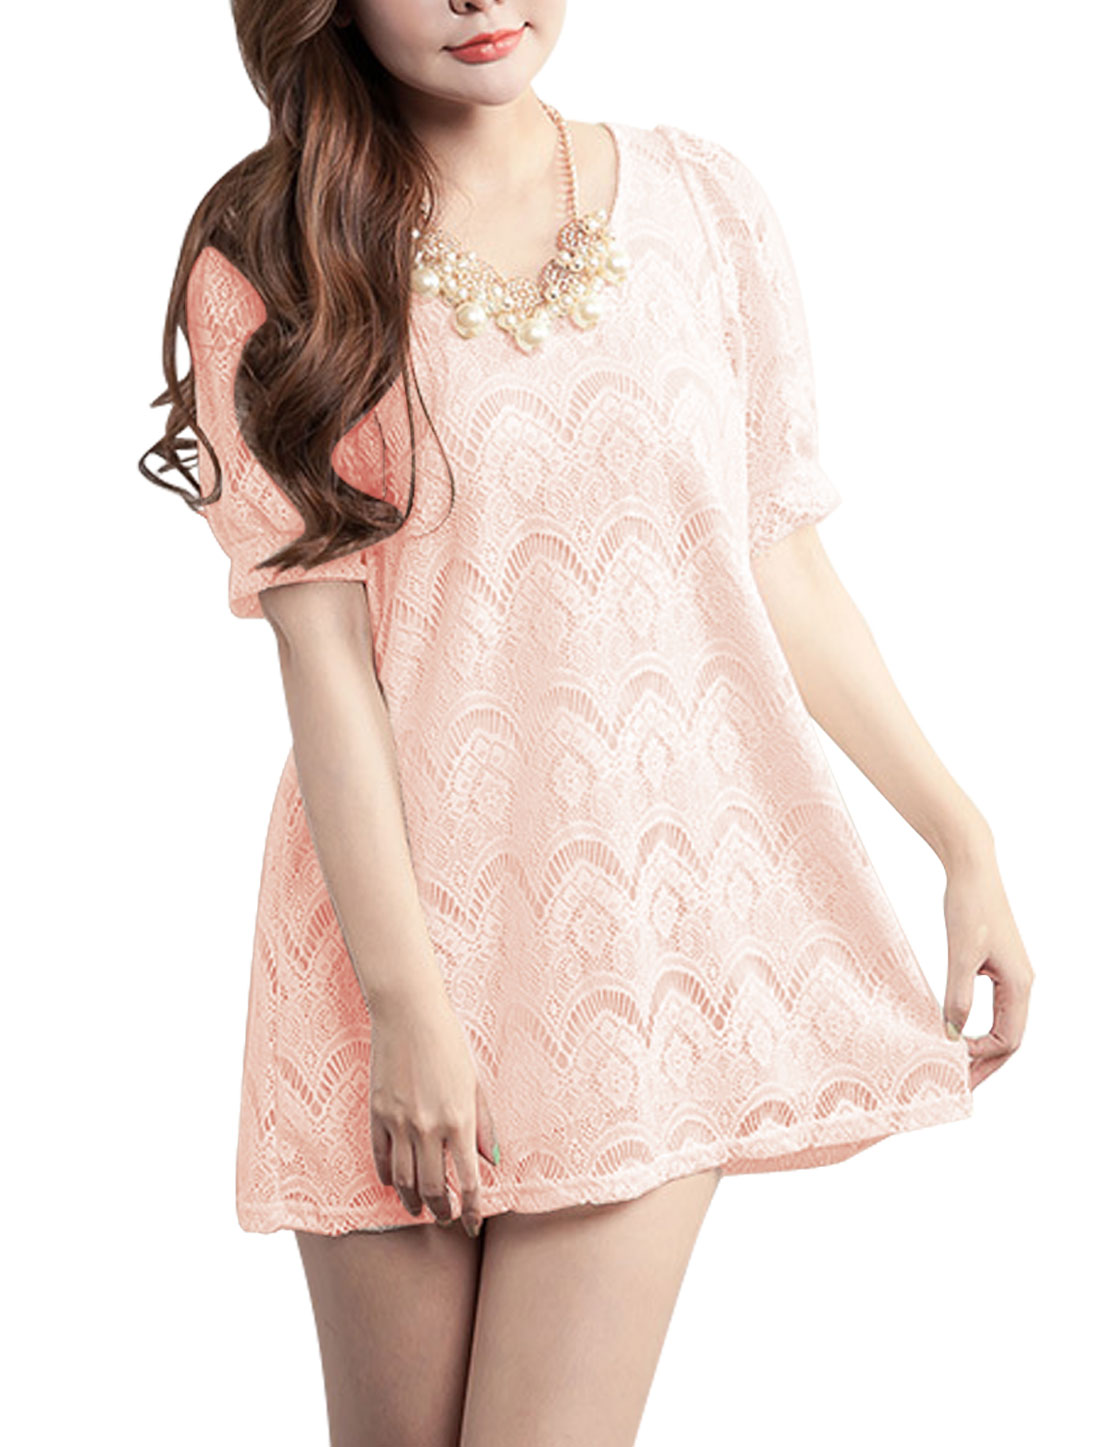 Lined Hollow Out Detail Chic NEW Lace Top for Women Light Pink XS